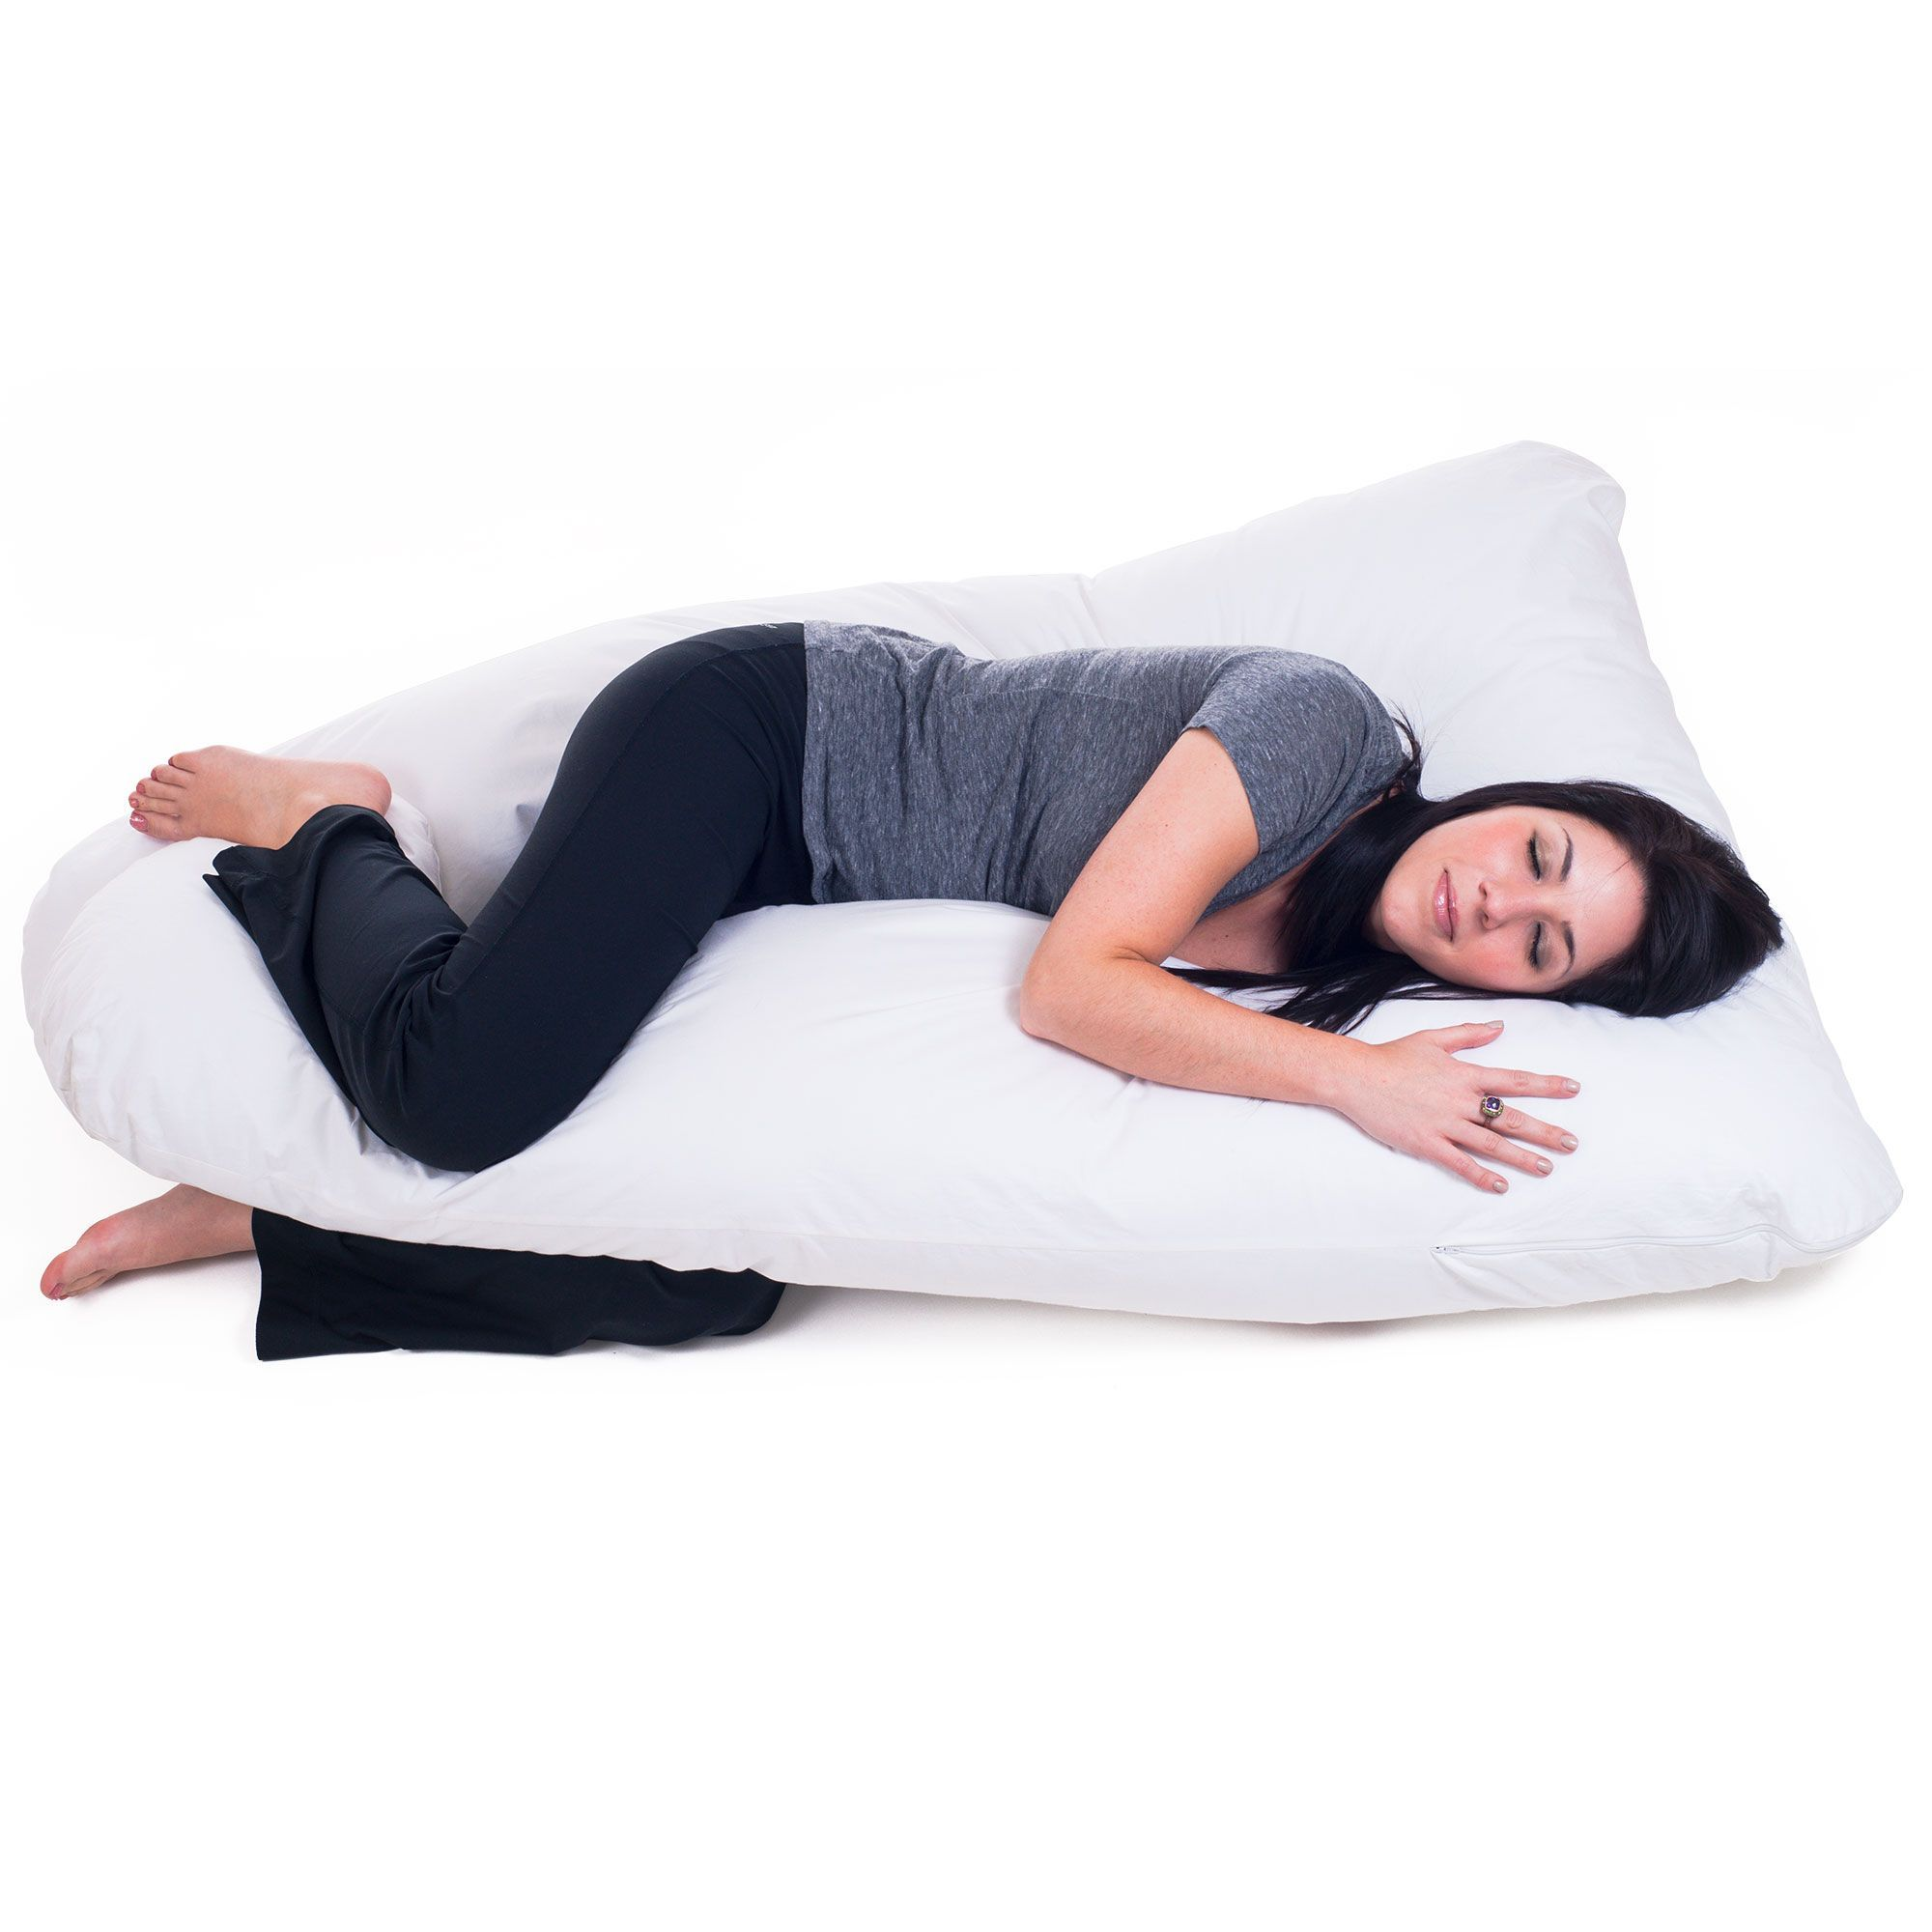 Remedy fullbody pregnancy contour u pillow shape the oujays and